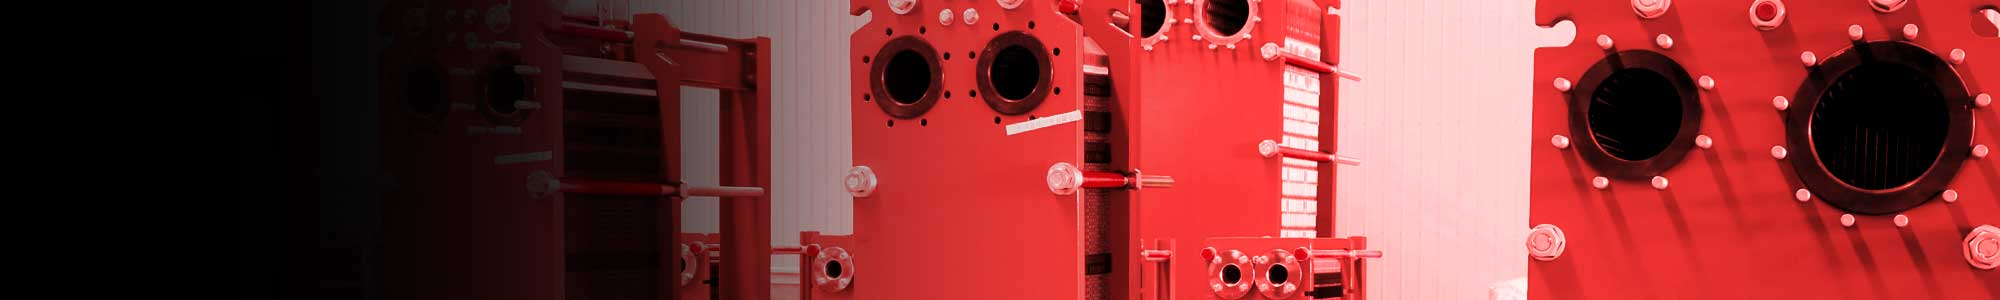 Heat Exchanger Plates Replacement service